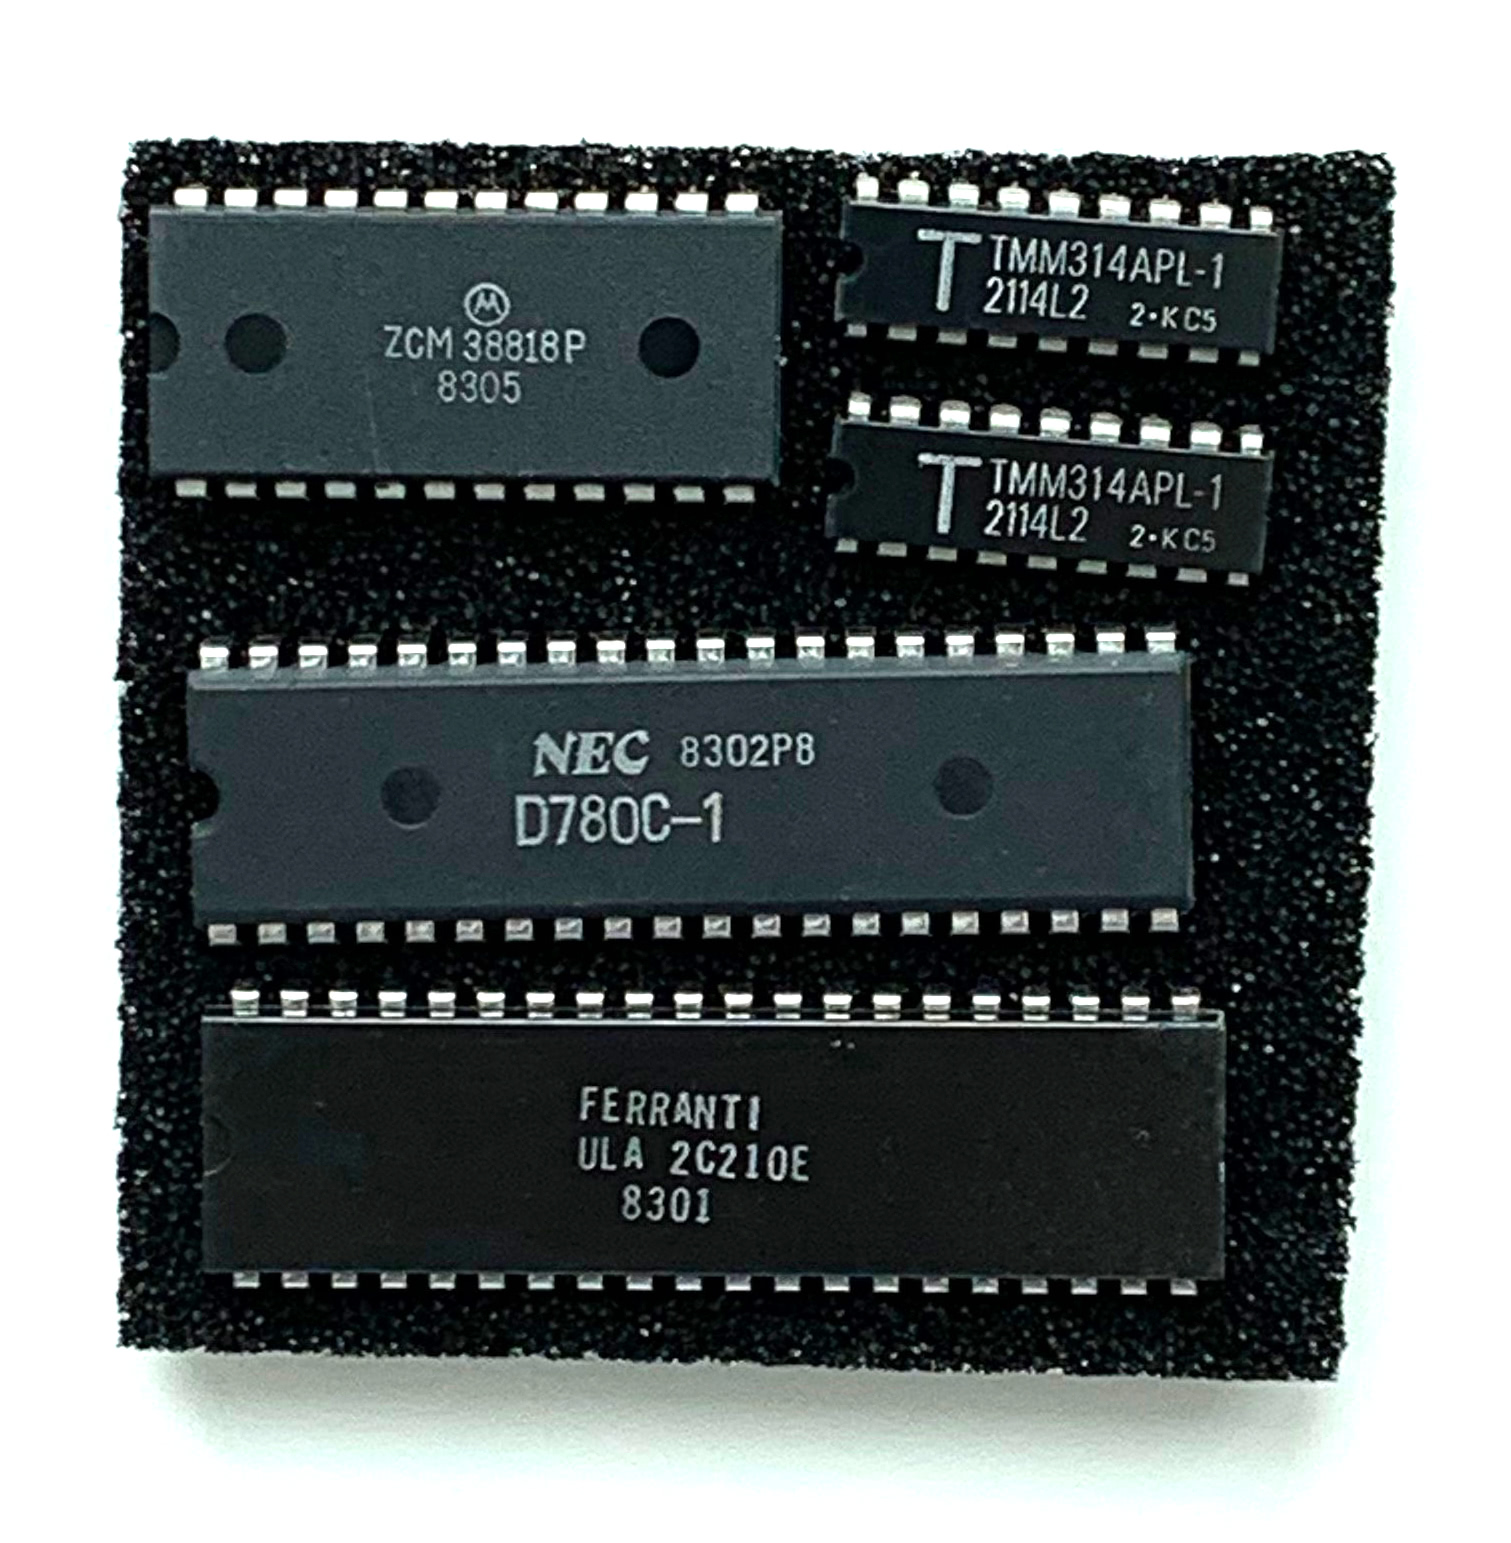 Sinclair ZX81 Kit – pagetable.com on